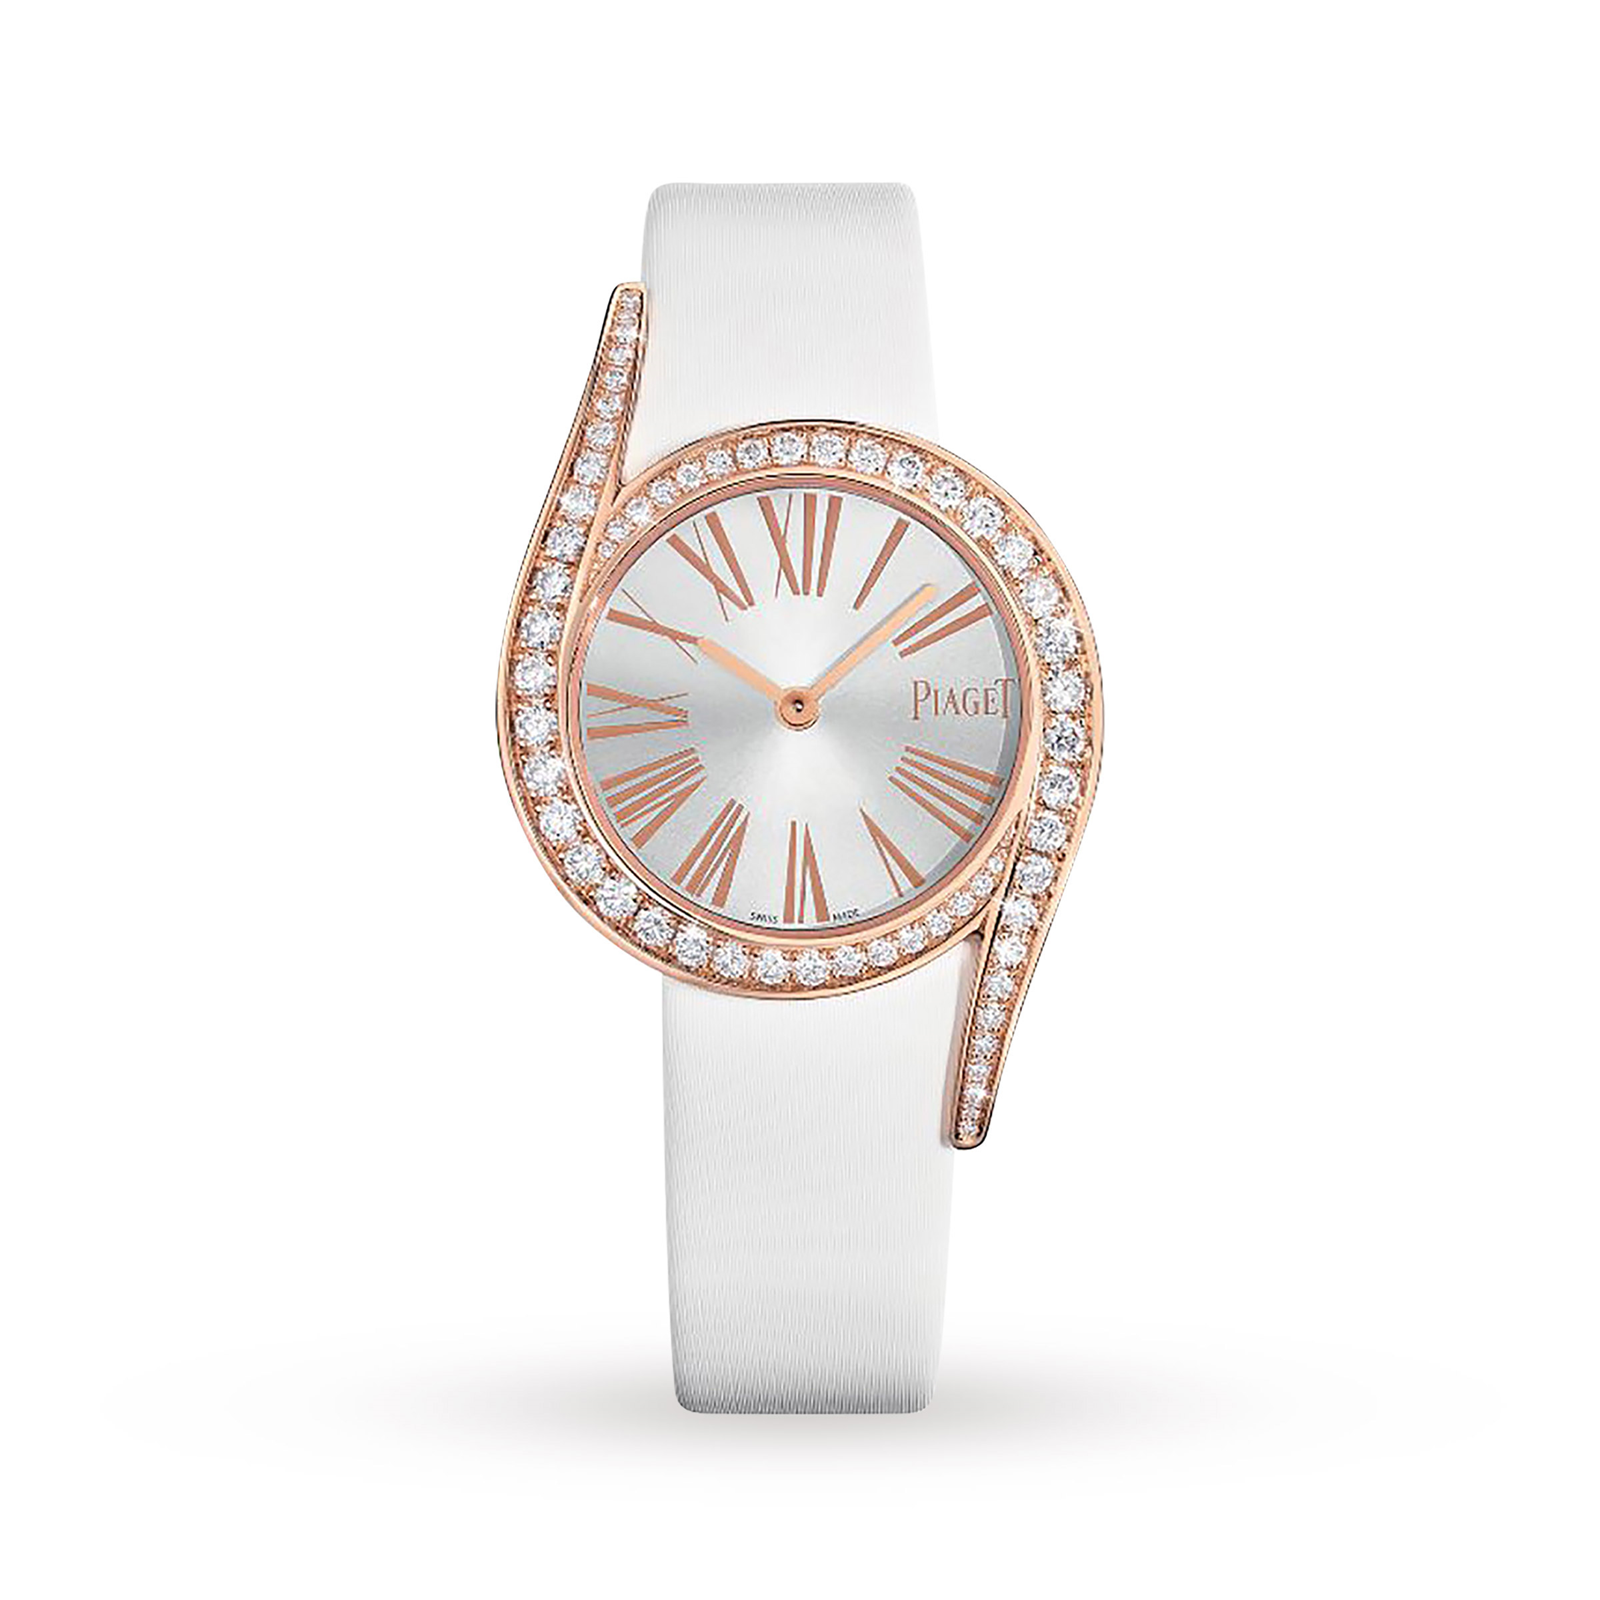 watch in pink strap gold new possession diamond watches white piaget